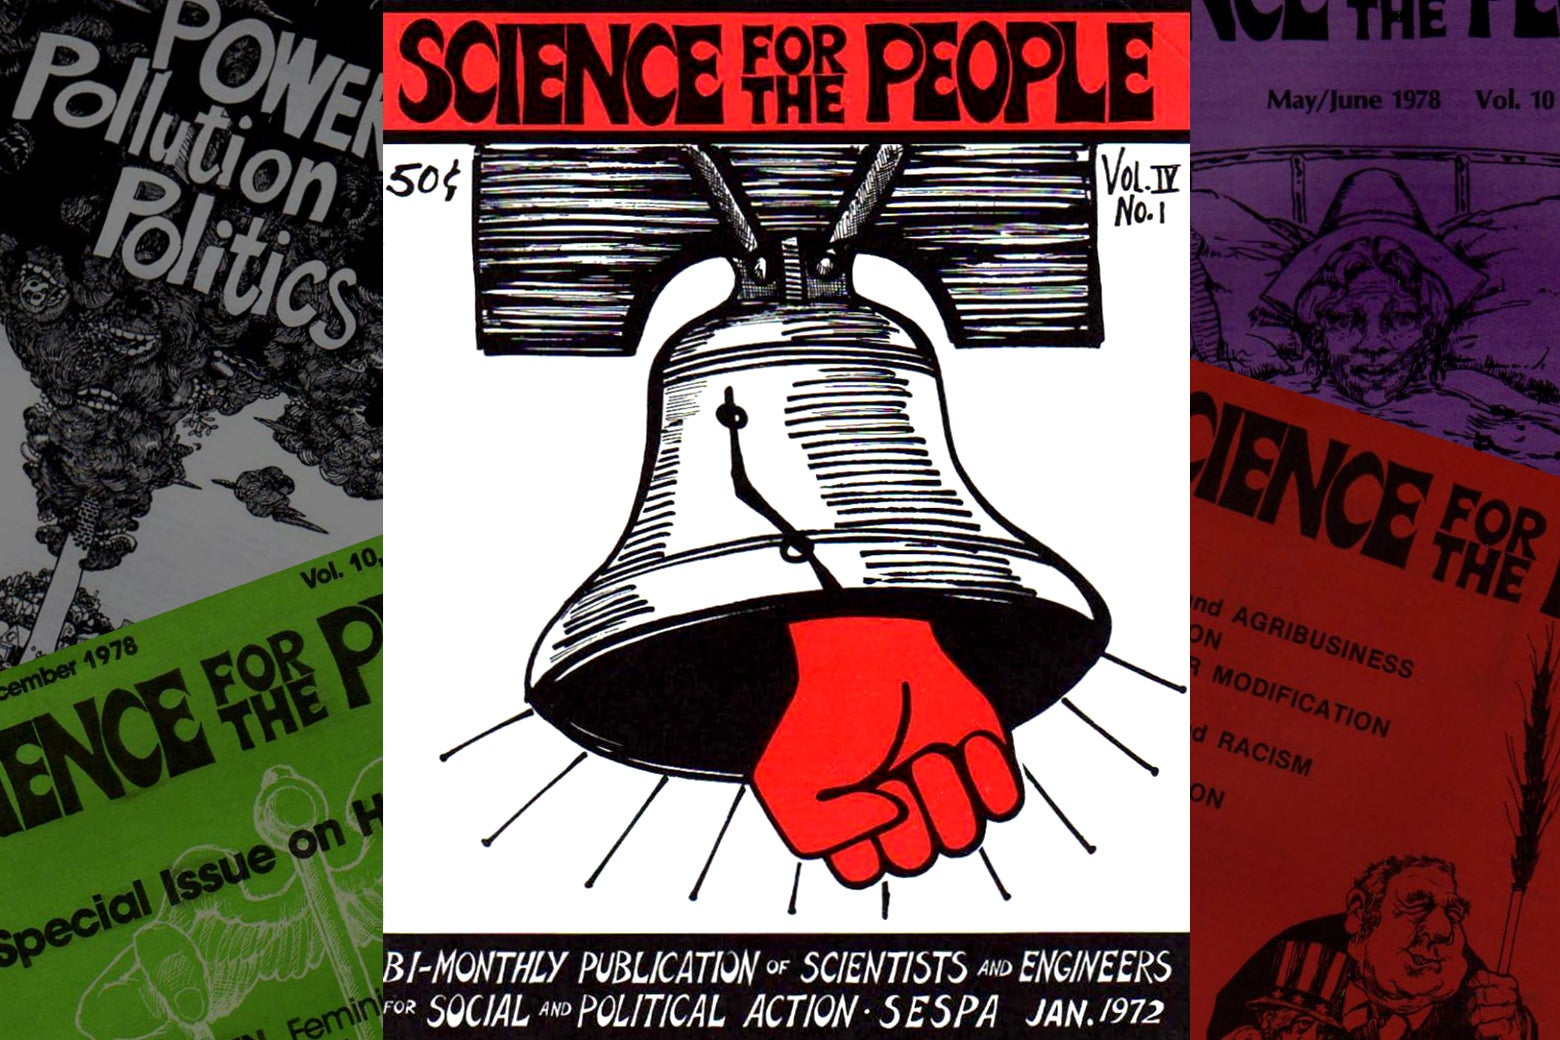 An assortment of Science For the People covers from the 1970s.